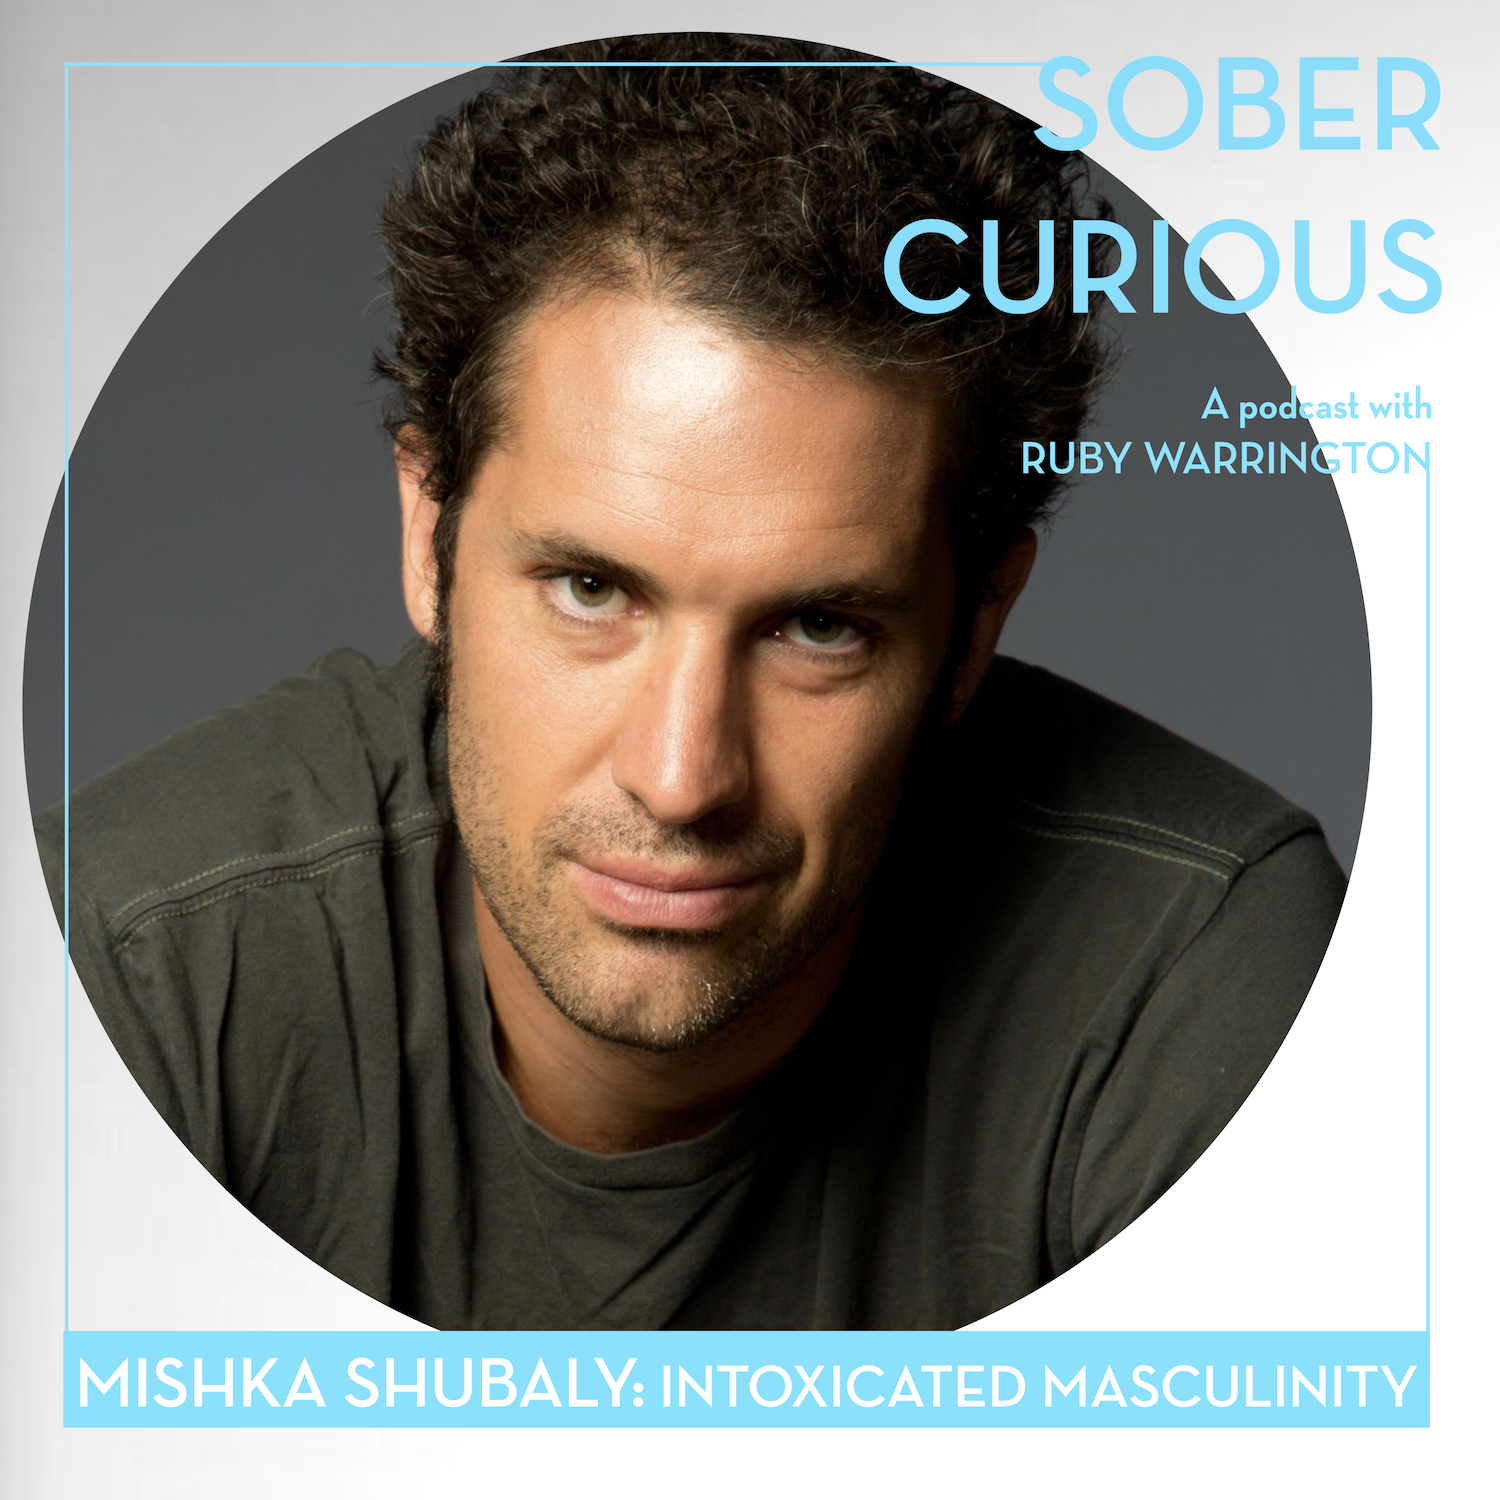 Mishka Shubaly sober curious podcast ruby warrington